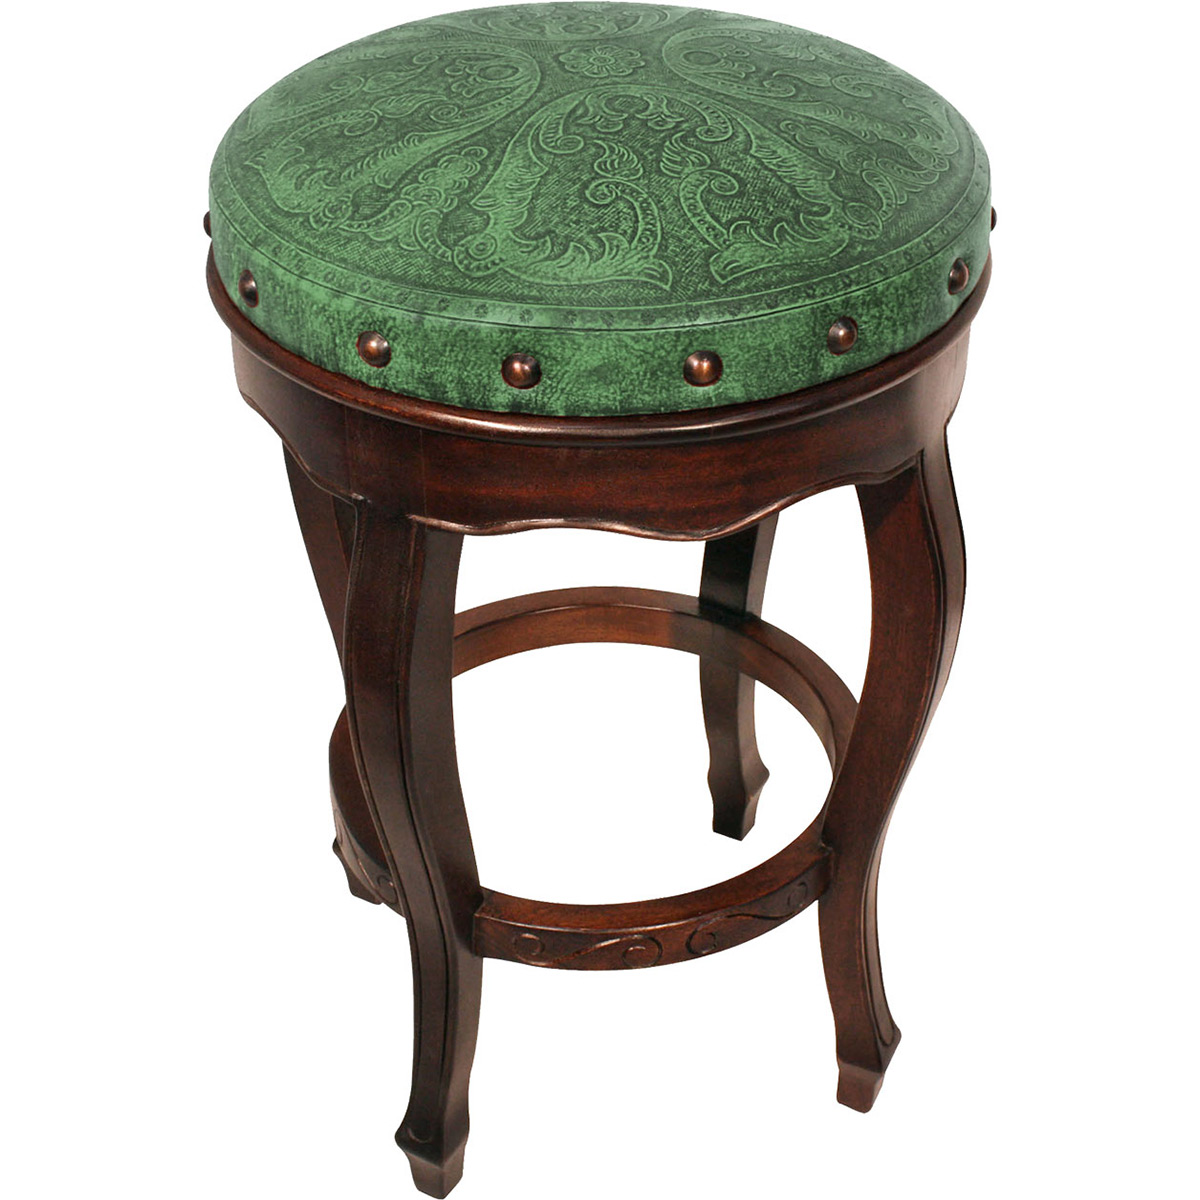 Spanish Heritage Counter Stool - Colonial Green